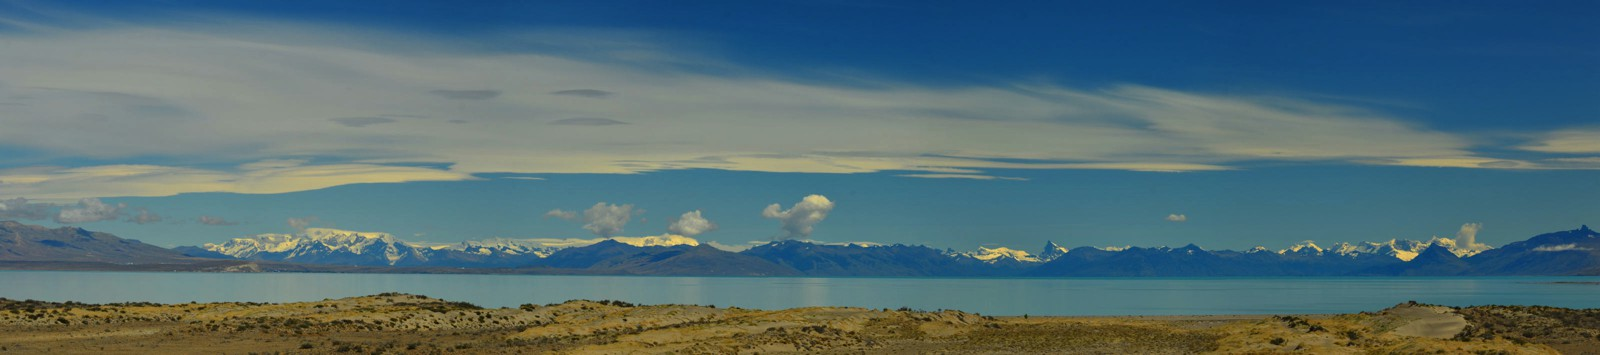 View of the Southern Patagonian Ice Field across Lago Argentino. (click on photo to view larger image)